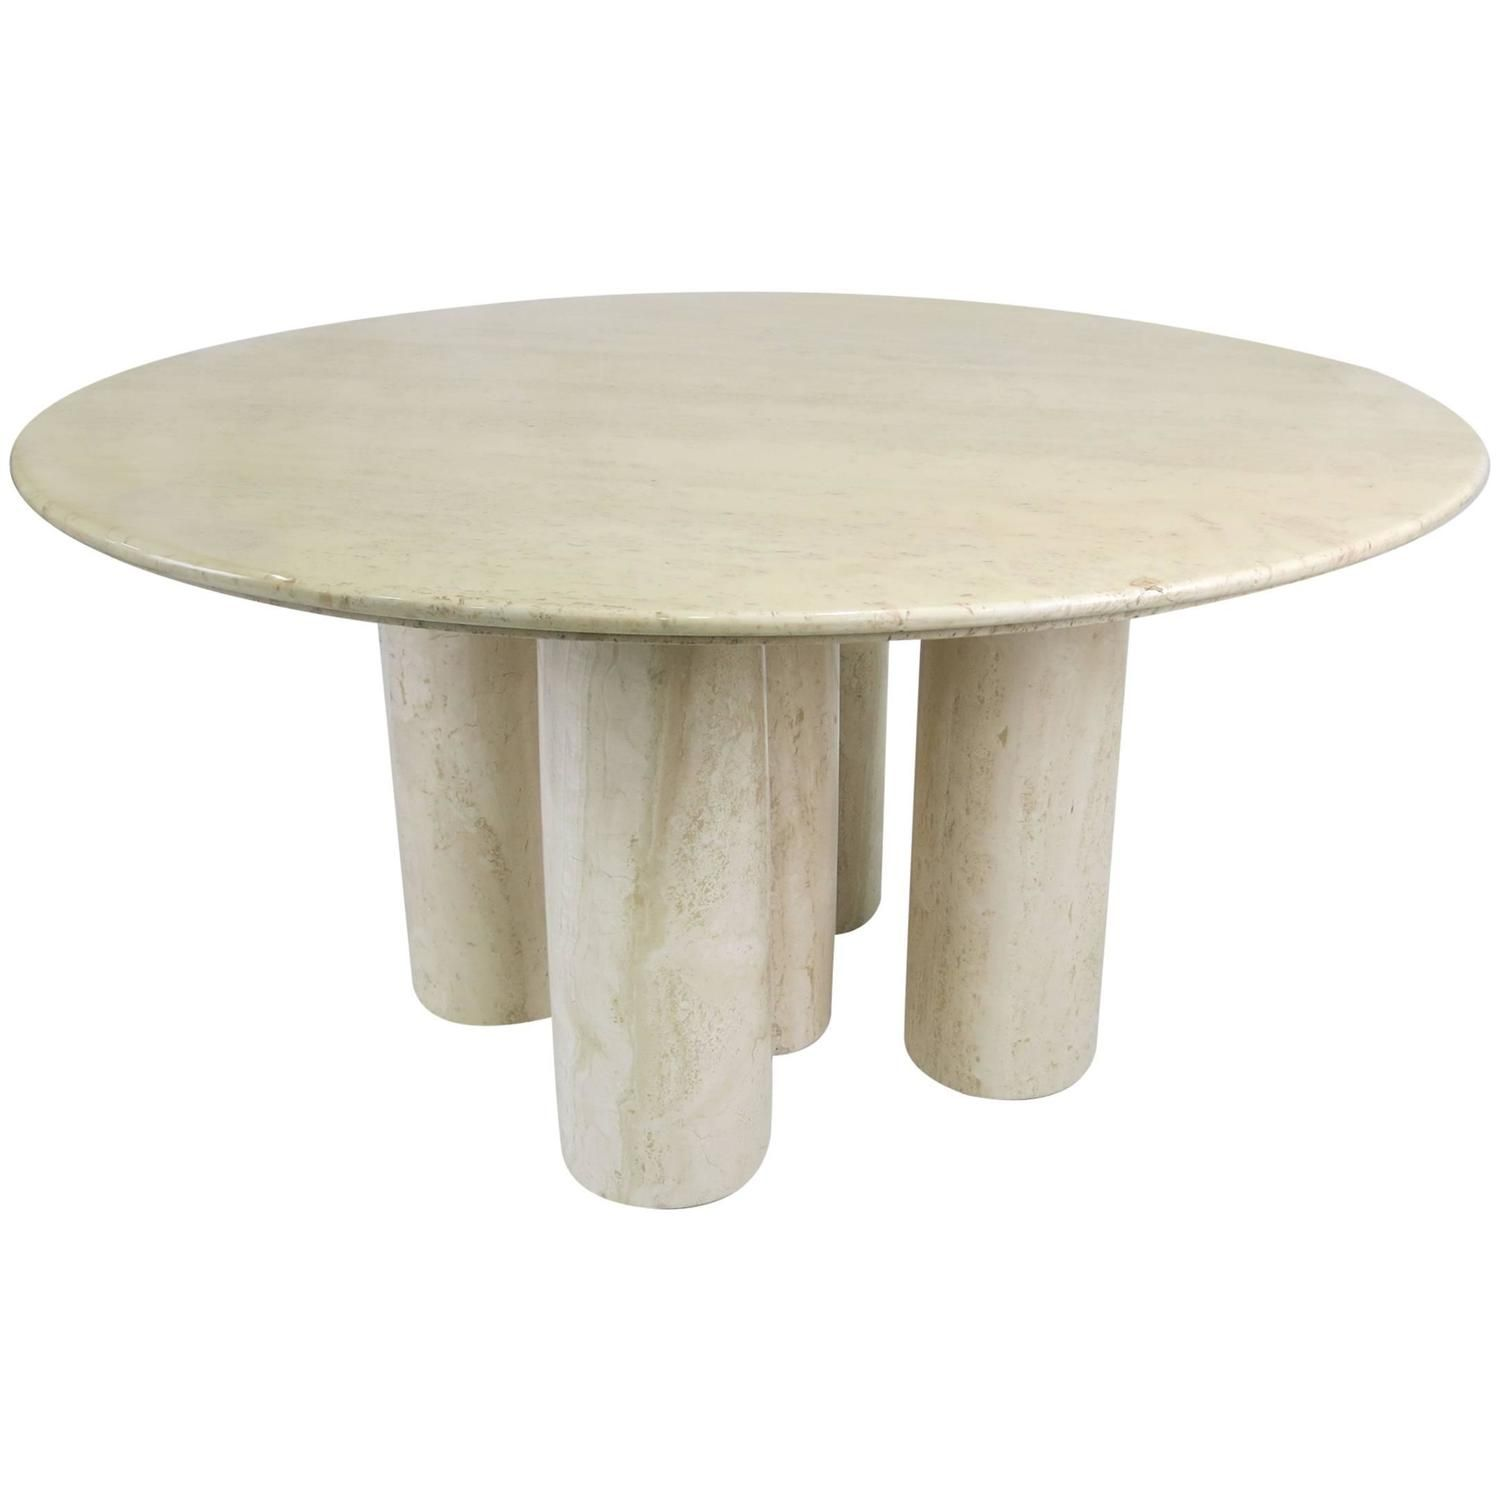 Rare Solid Marble Ii Colonnato Table By Mario Bellini For Cassina Cassina Modern Dining Room Tables Dining Table [ 1500 x 1500 Pixel ]